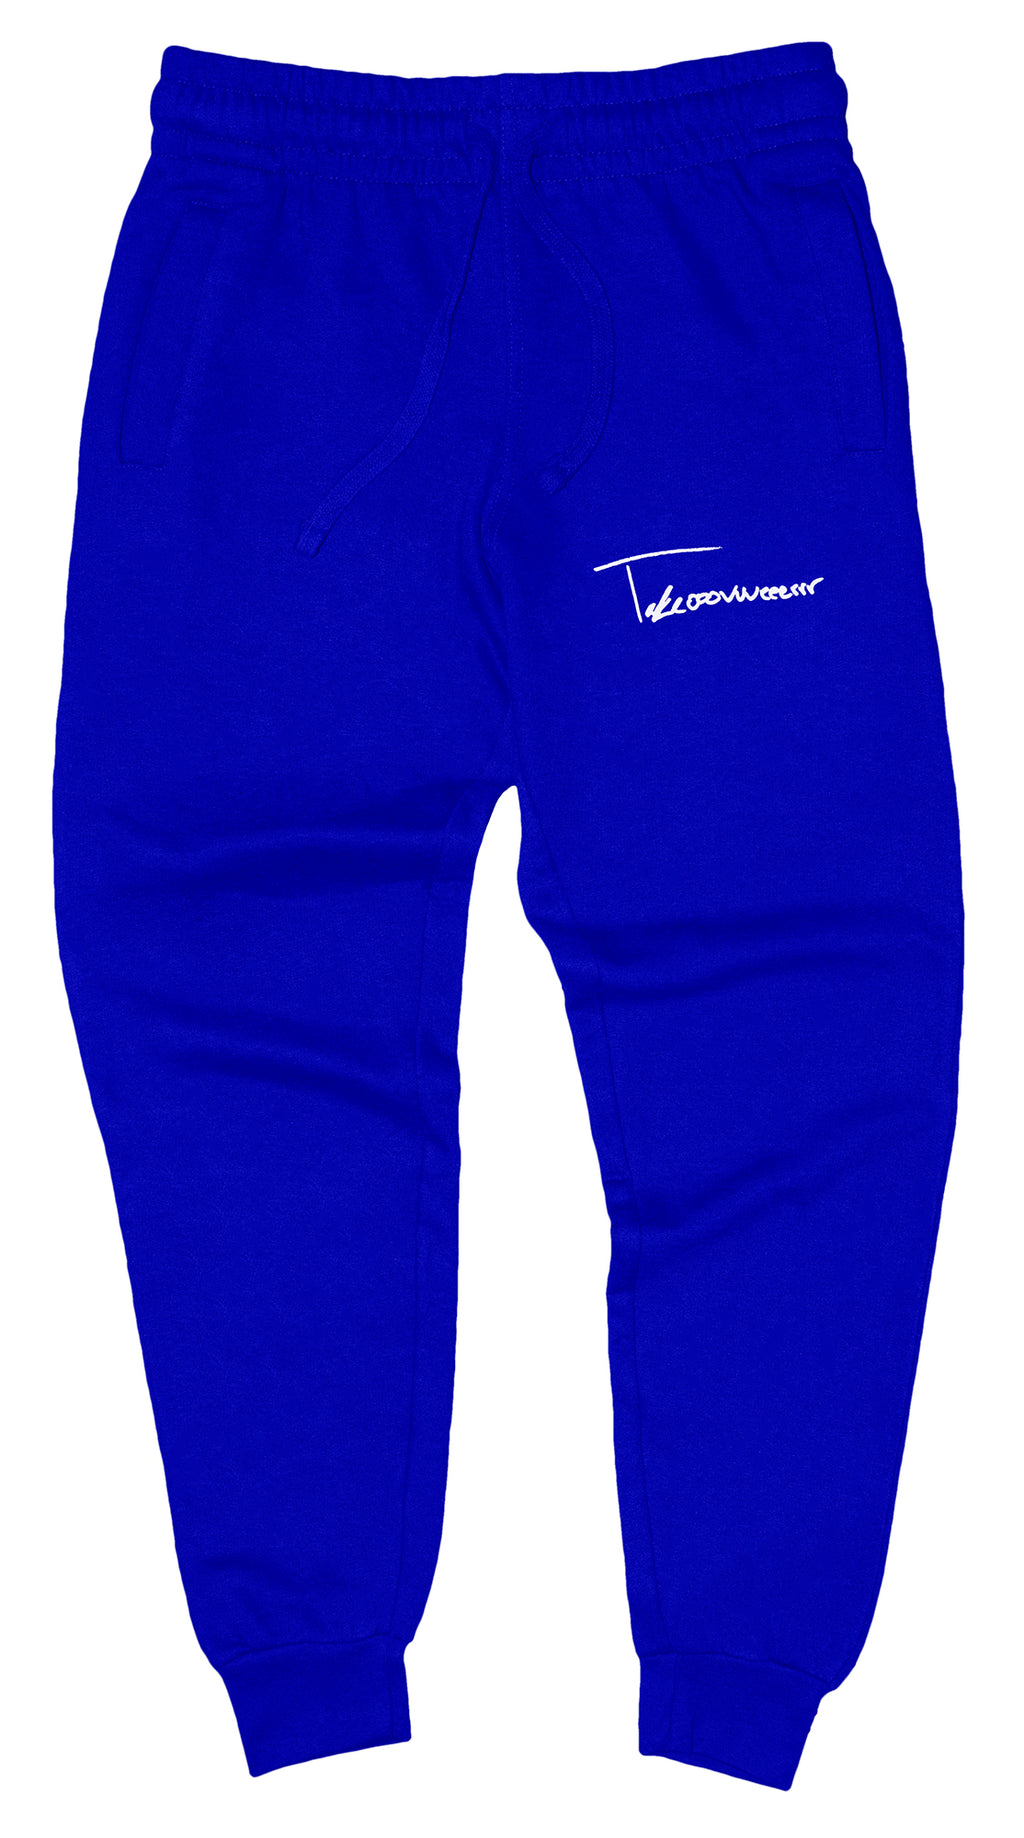 Takeover Signature Sweatpants (Royal Blue/White)